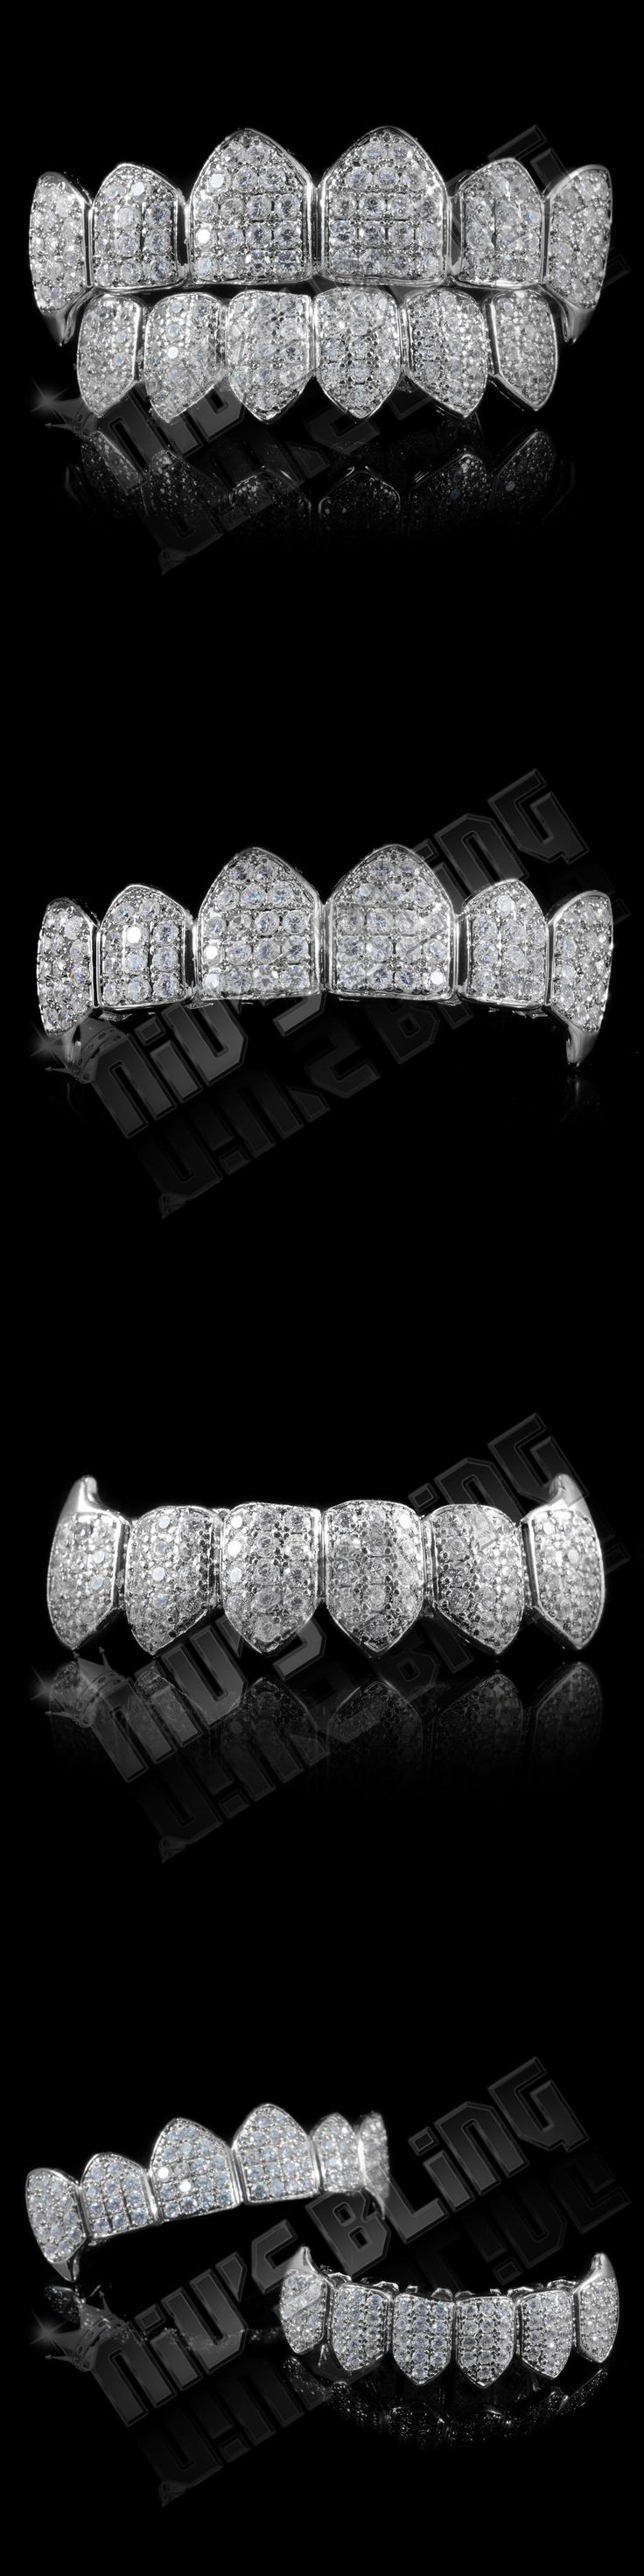 Grillz Dental Grills 152808: 18K White Gold Plated High Quality Cz Vampire Fang Top Bottom Grillz Teeth BUY IT NOW ONLY: $49.99